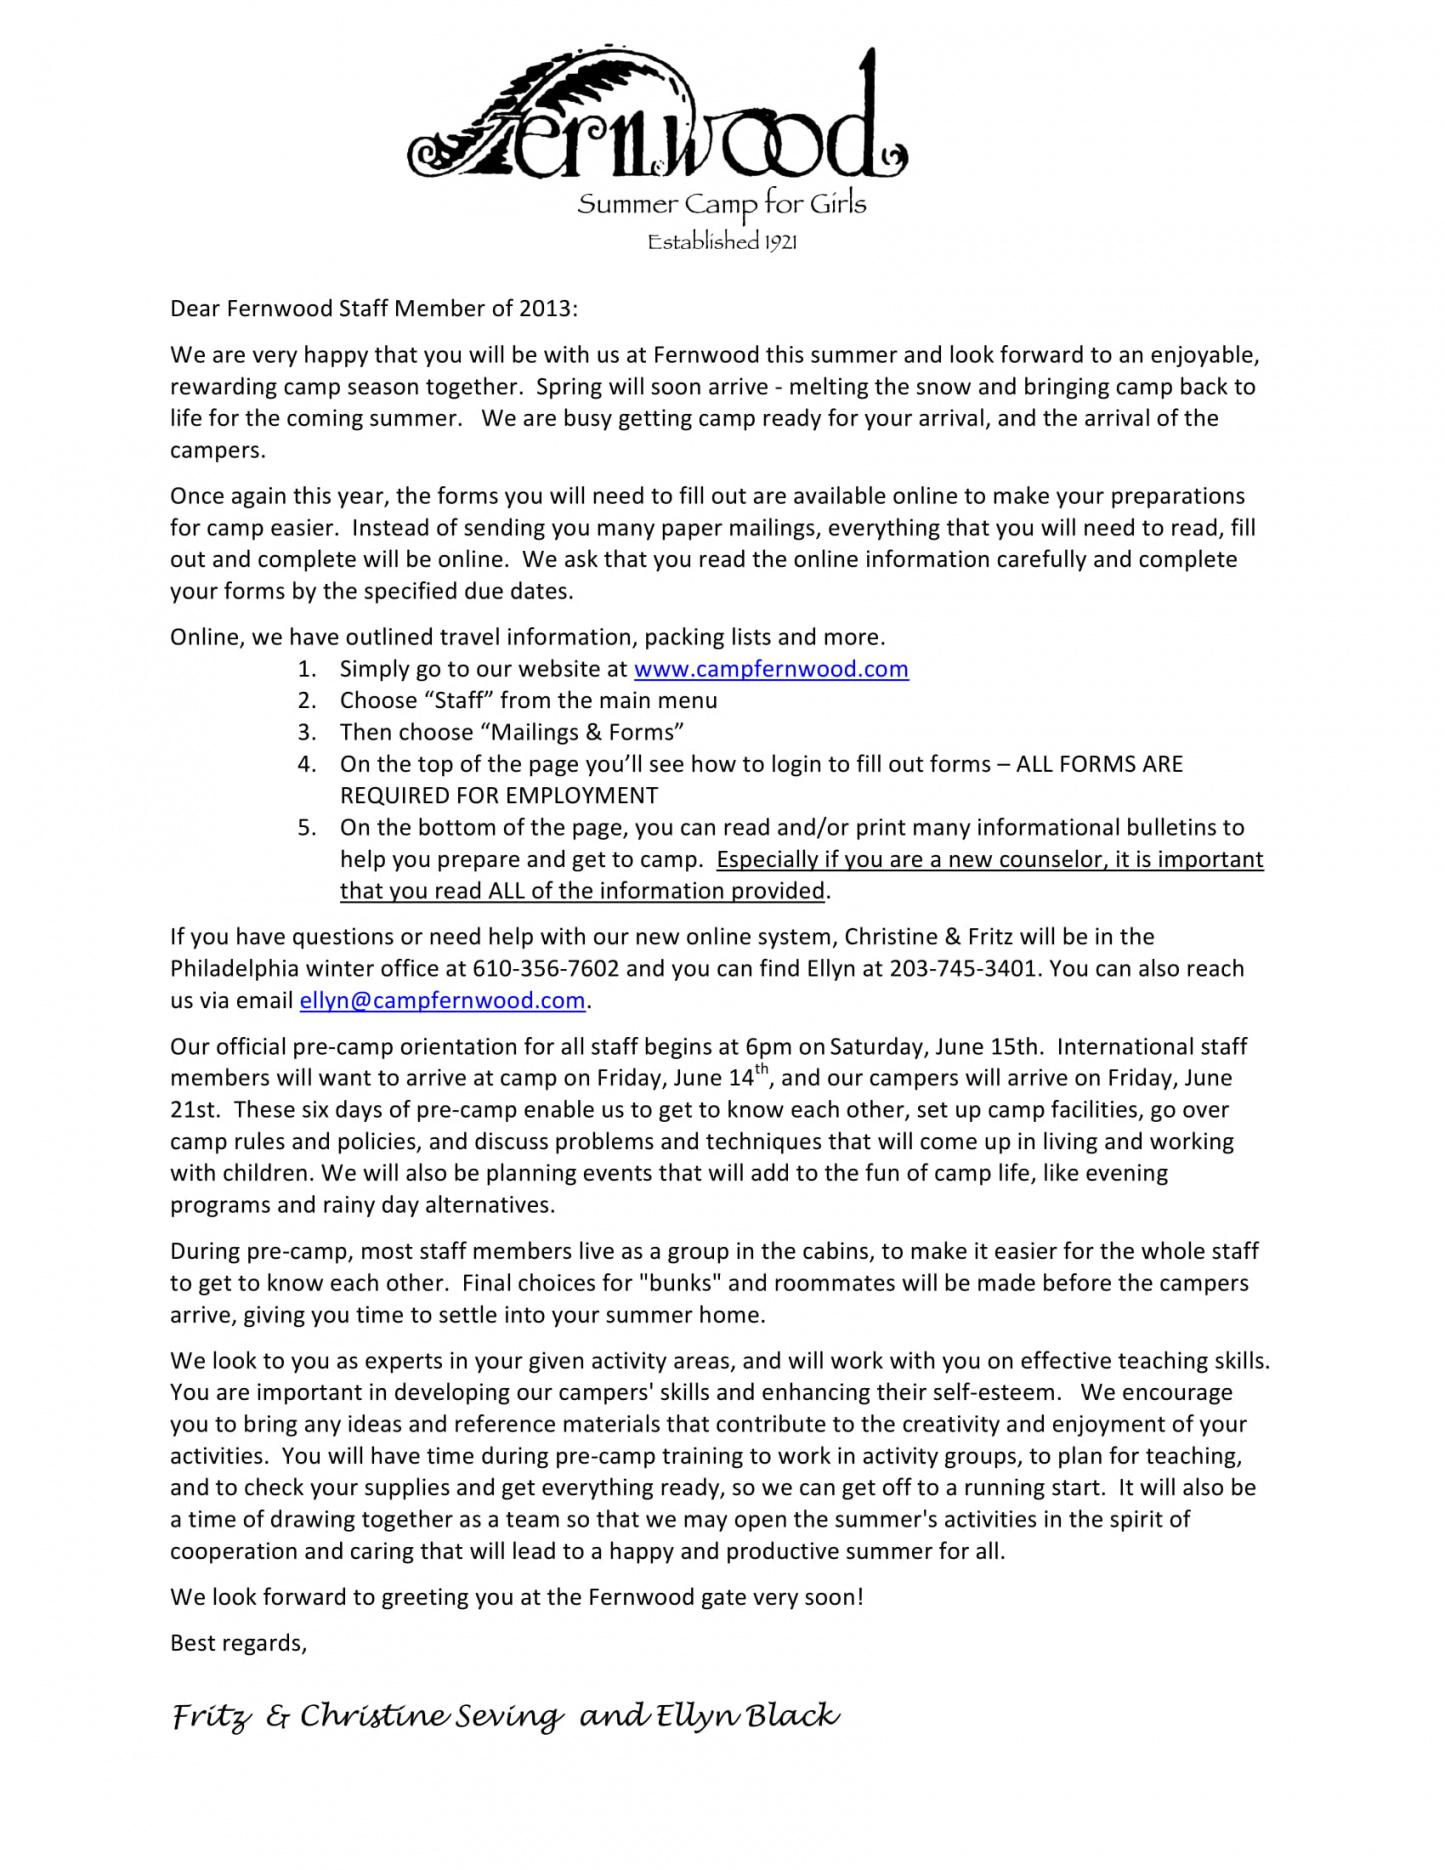 free 9 new hire welcome letter examples  pdf  examples summer camp welcome letter template